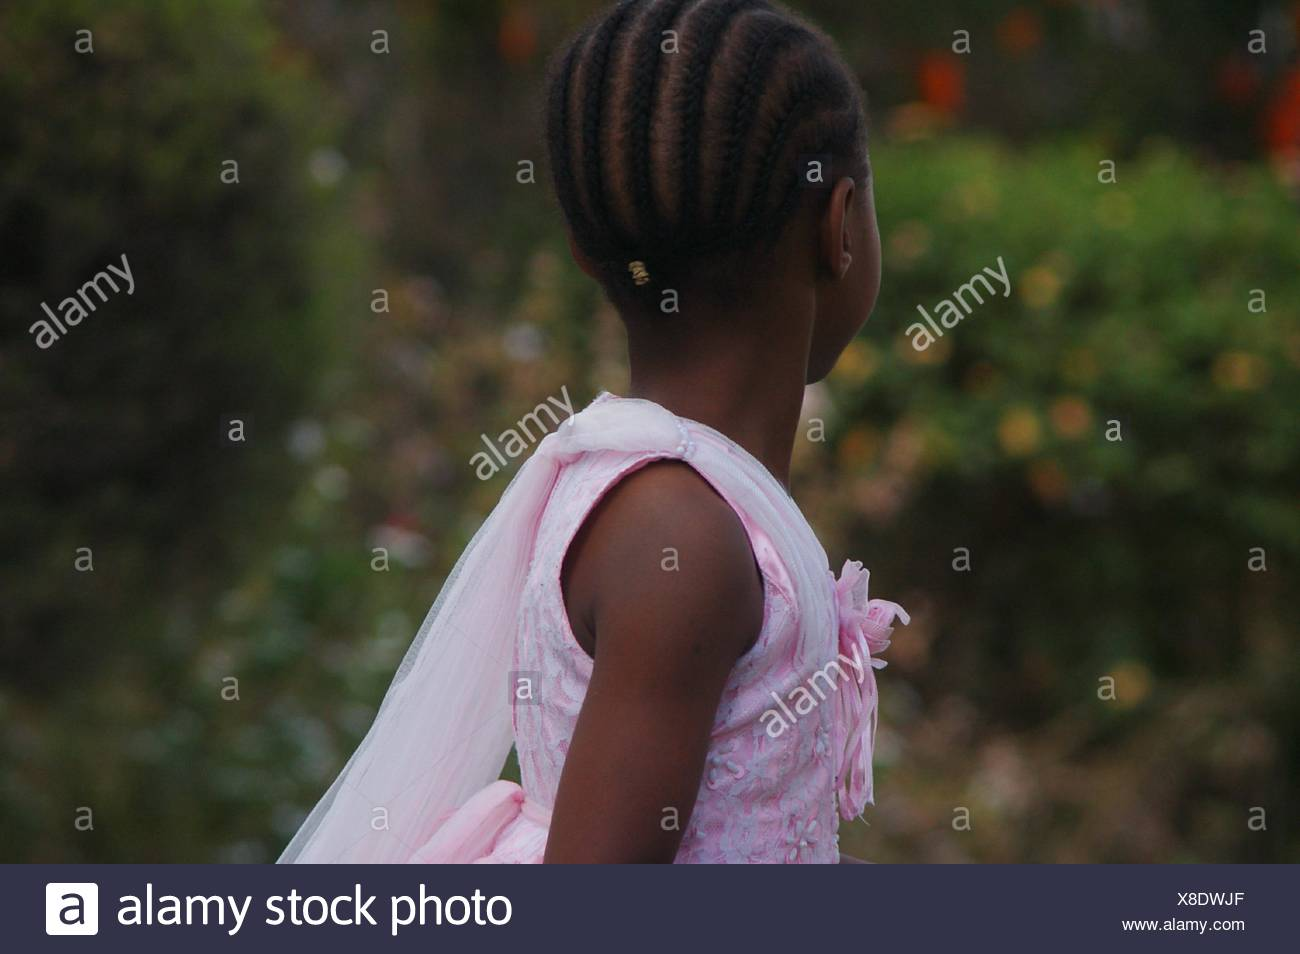 Rear View Of Girl With Braided Hair - Stock Image